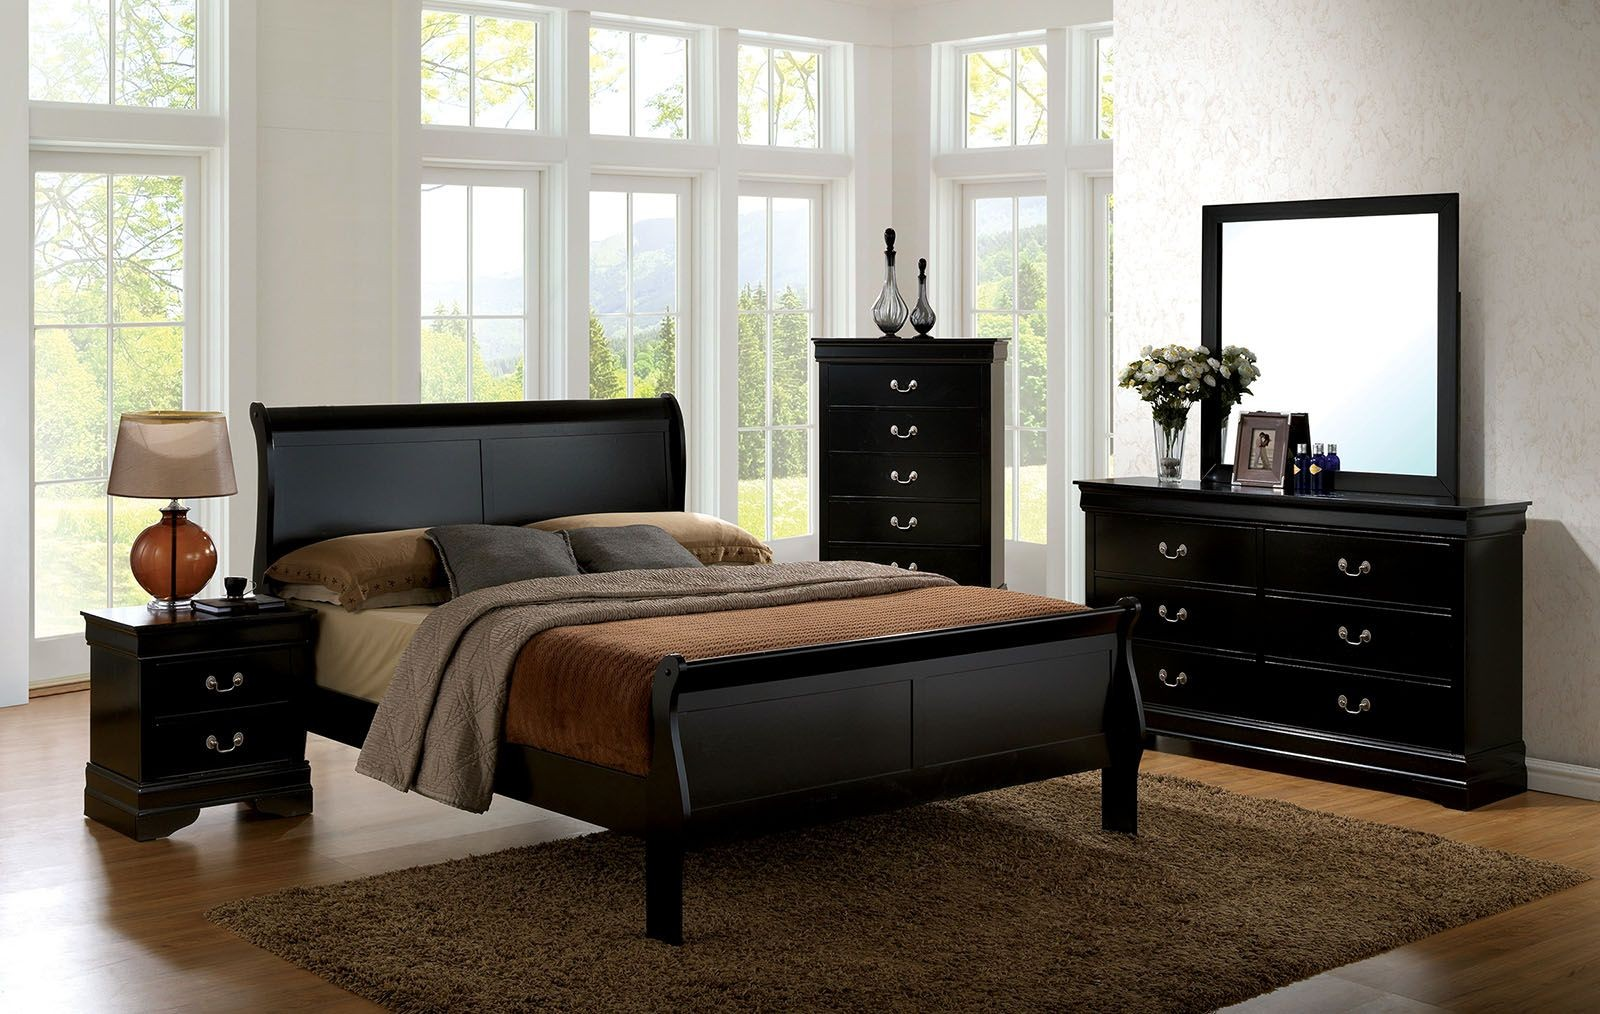 louis philippe iii black panel bedroom set cm7866bk q